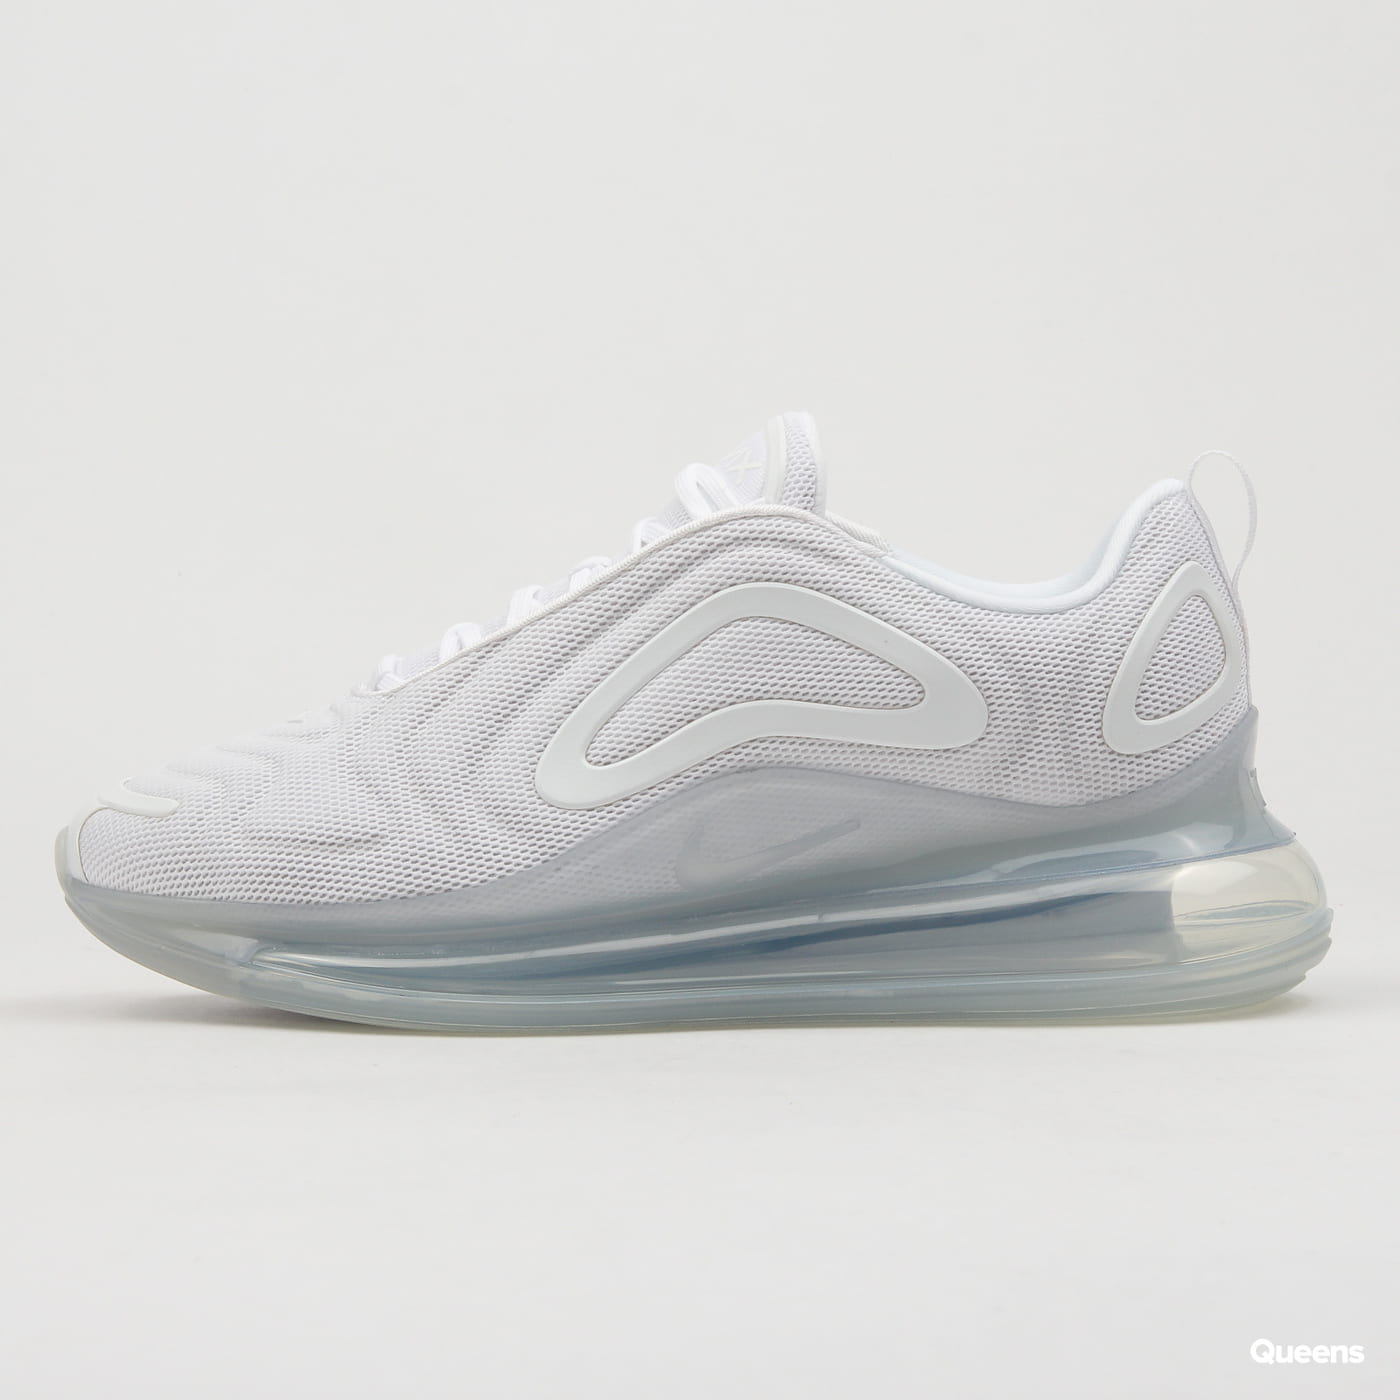 Nike Air Max 720 white / white - mtlc platinum